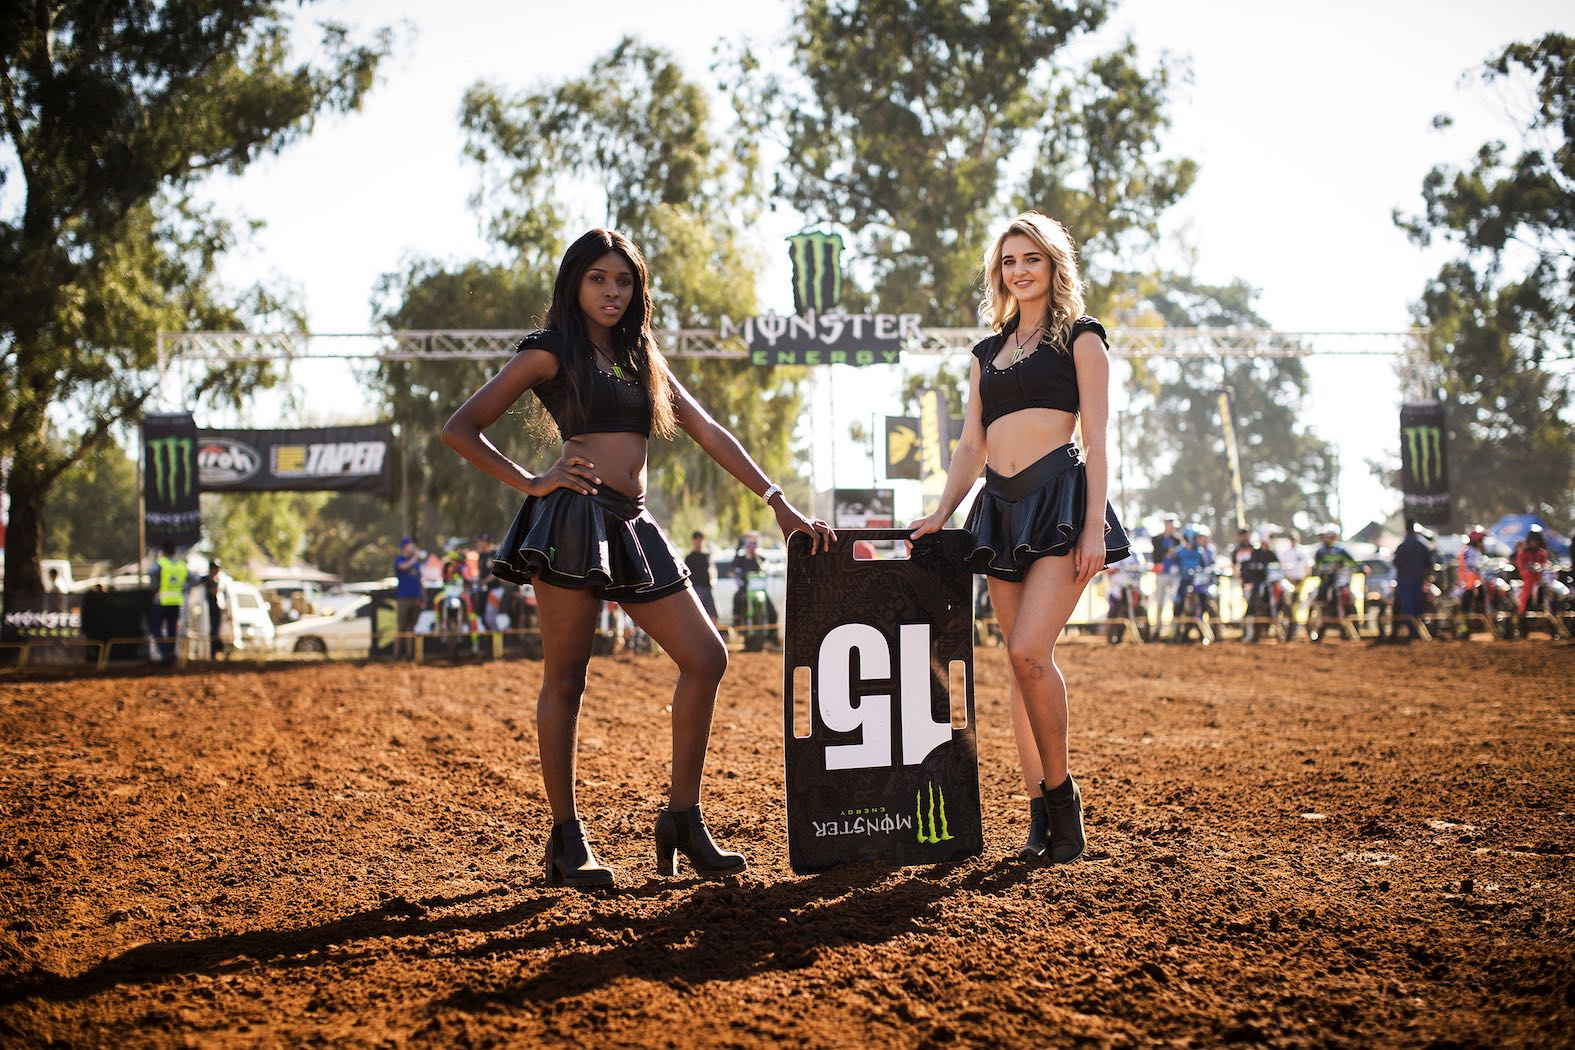 Motocross Action at its best at Round 4 of the SA MX Nationals.